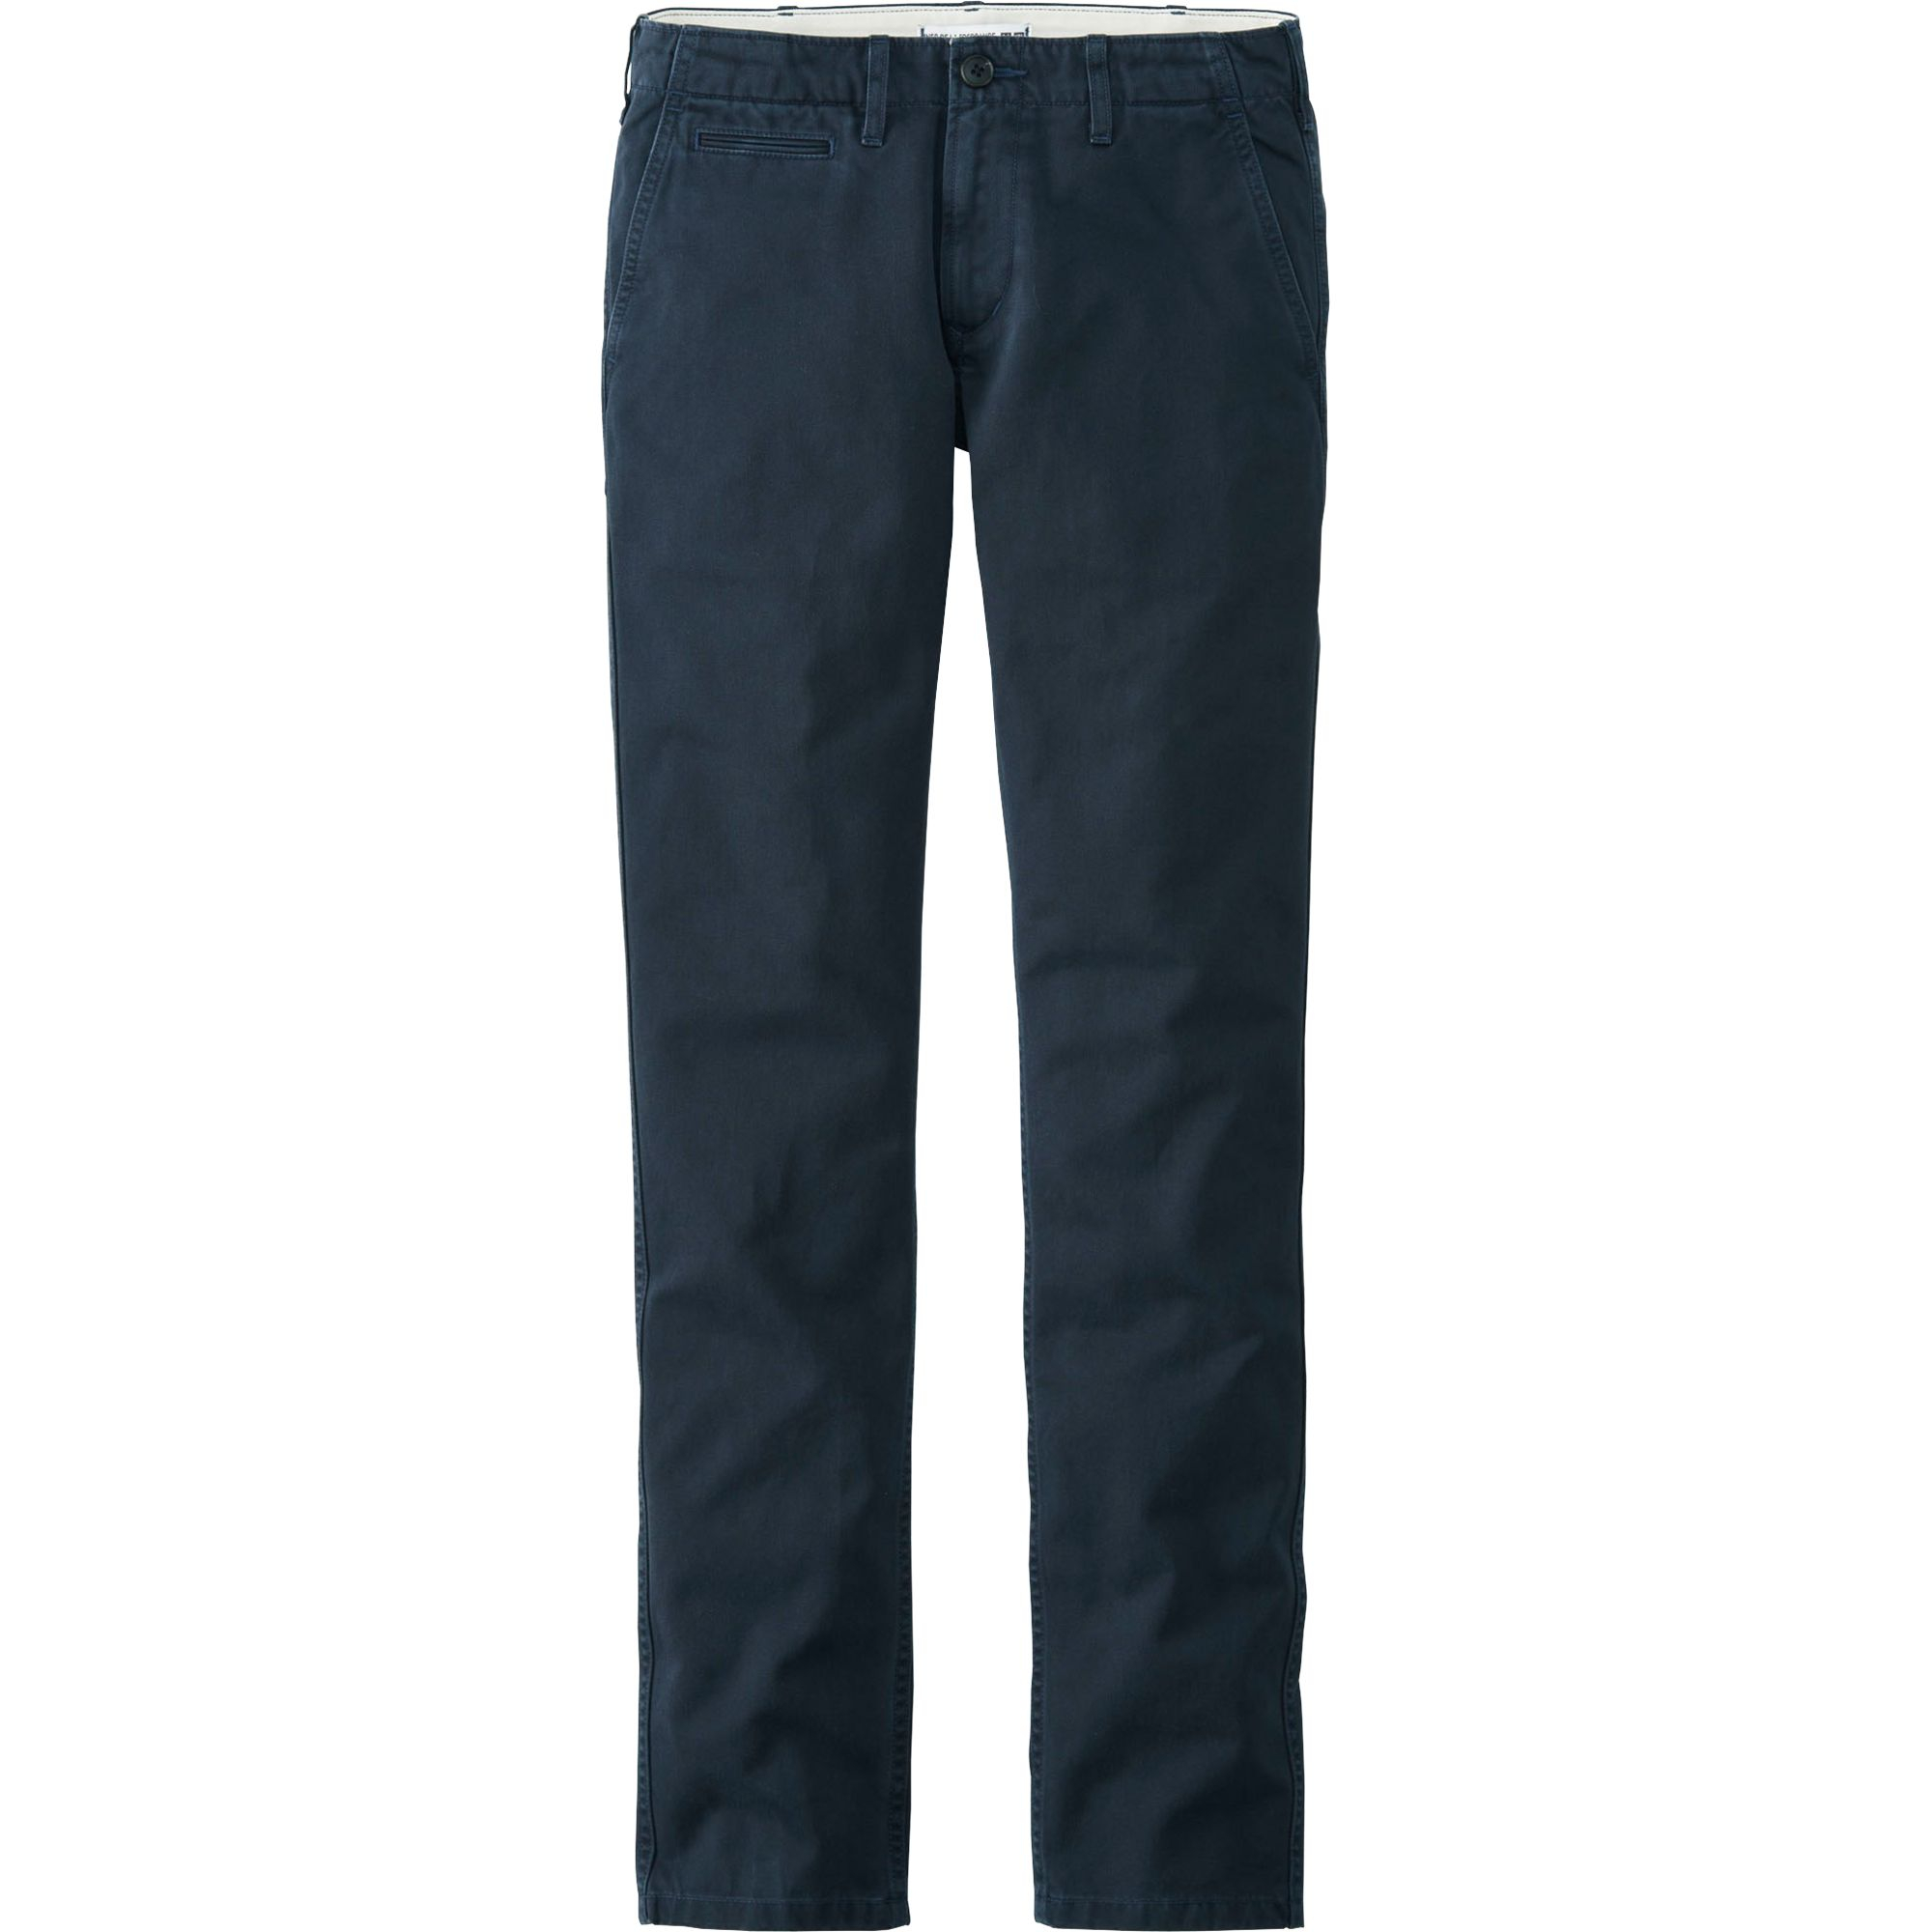 Simple Pants Should Be 100% Cotton Chinos Or Dress Pants Made With Tropical Wool Or Lightweight  Whatever You Pick, Let Those Puppies Breathe As Much As You Can